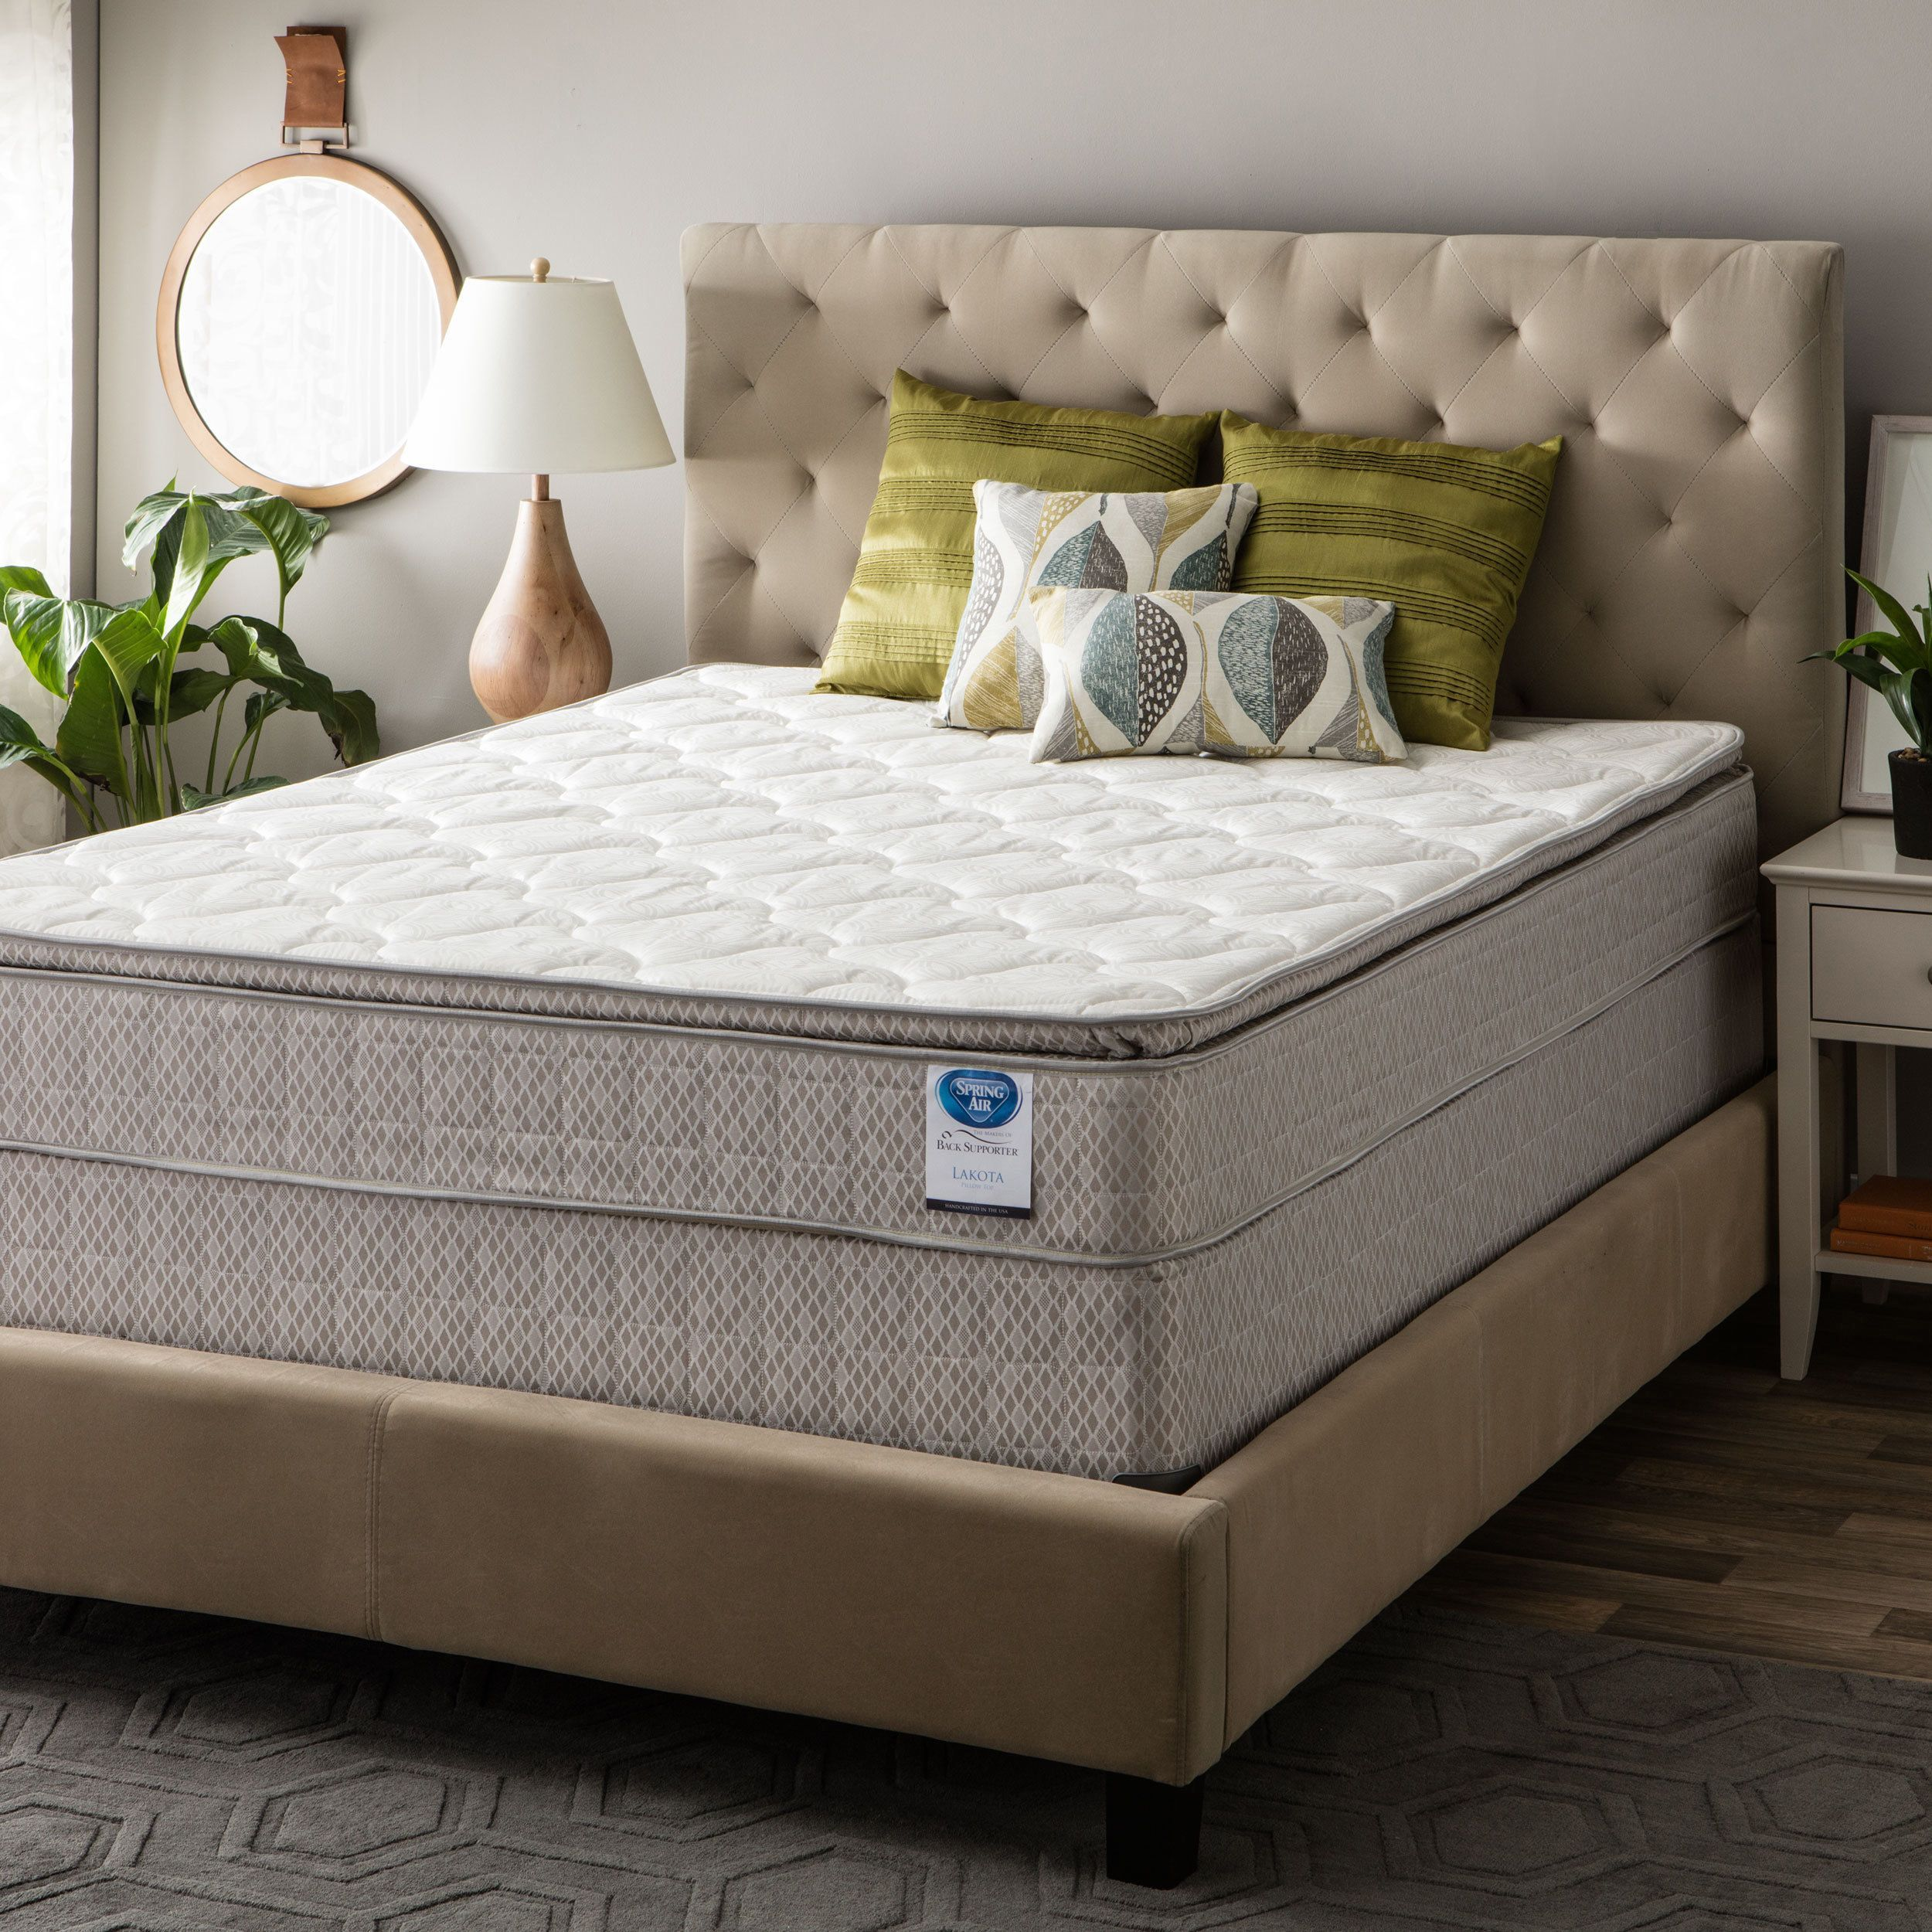 spring air value collection lakota twin xl size pillow top mattress